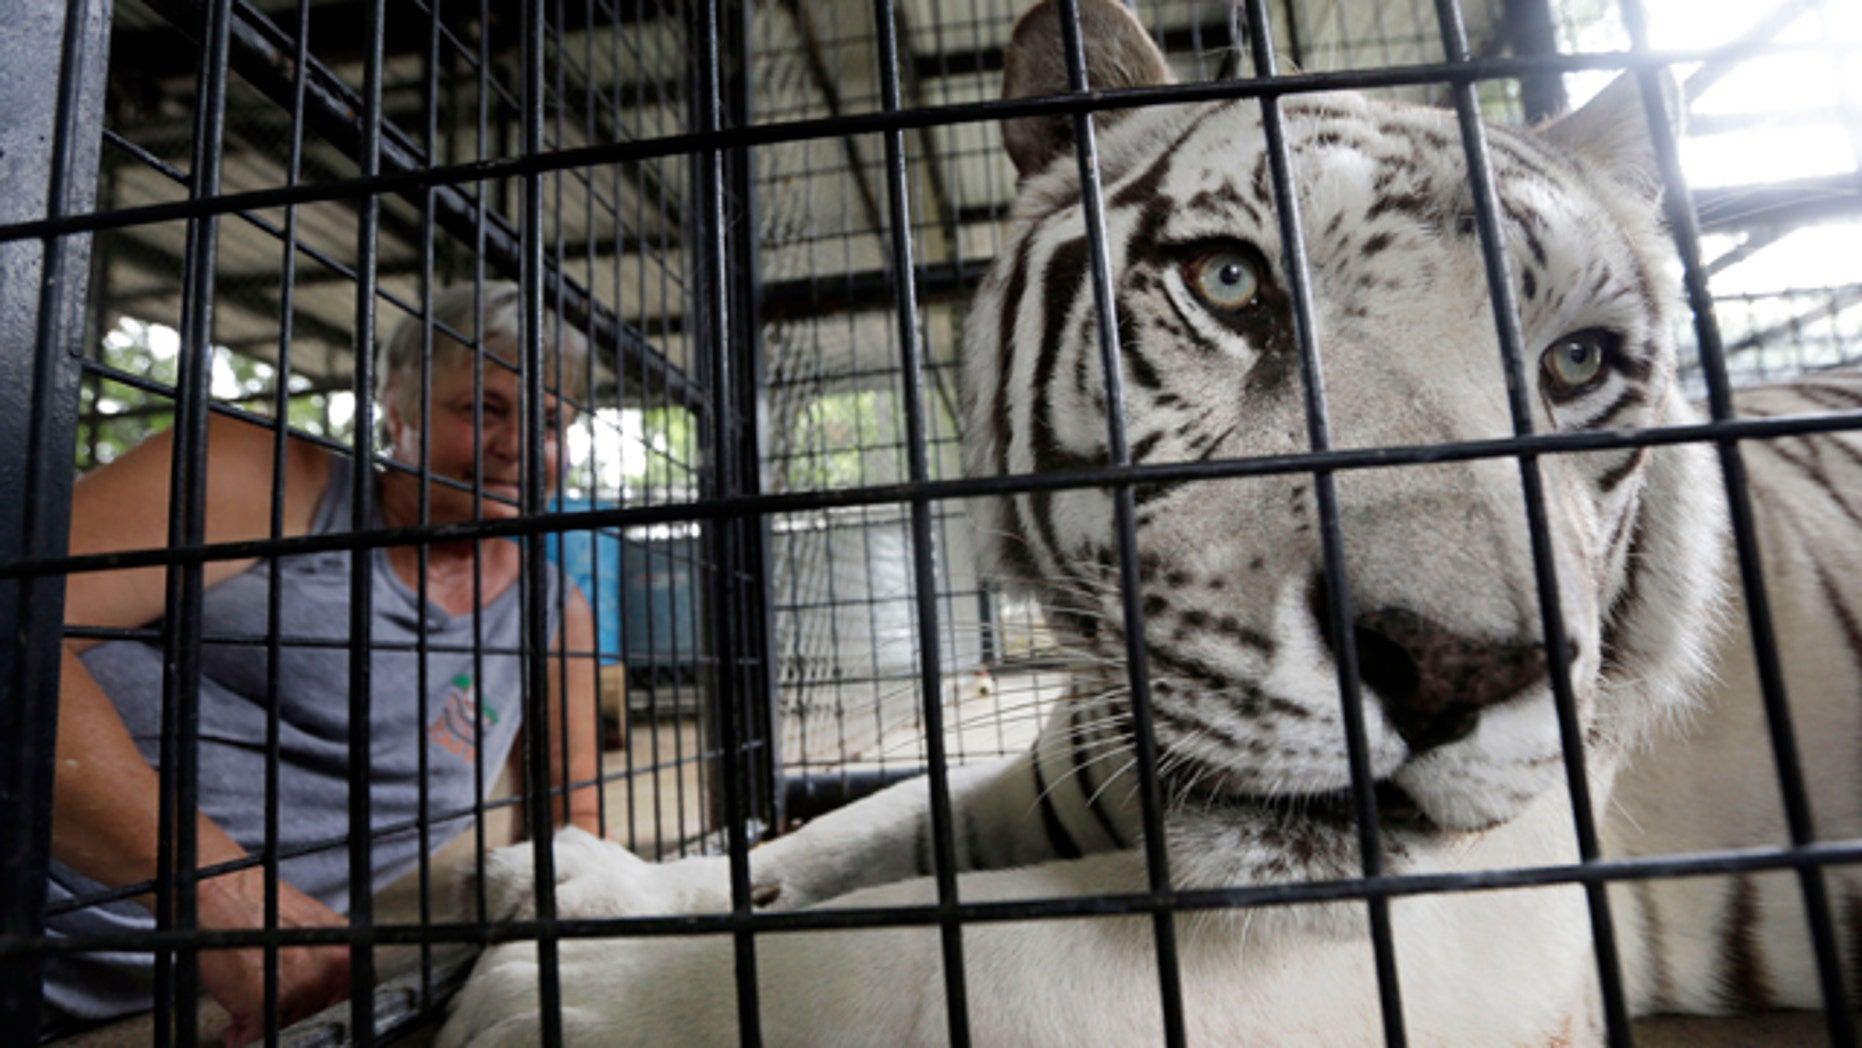 July 25, 2013: A tiger suffering from distemper is calmed before a blood draw at the In-Sync Exotics Wildlife Rescue and Education Center in Wylie, Texas.